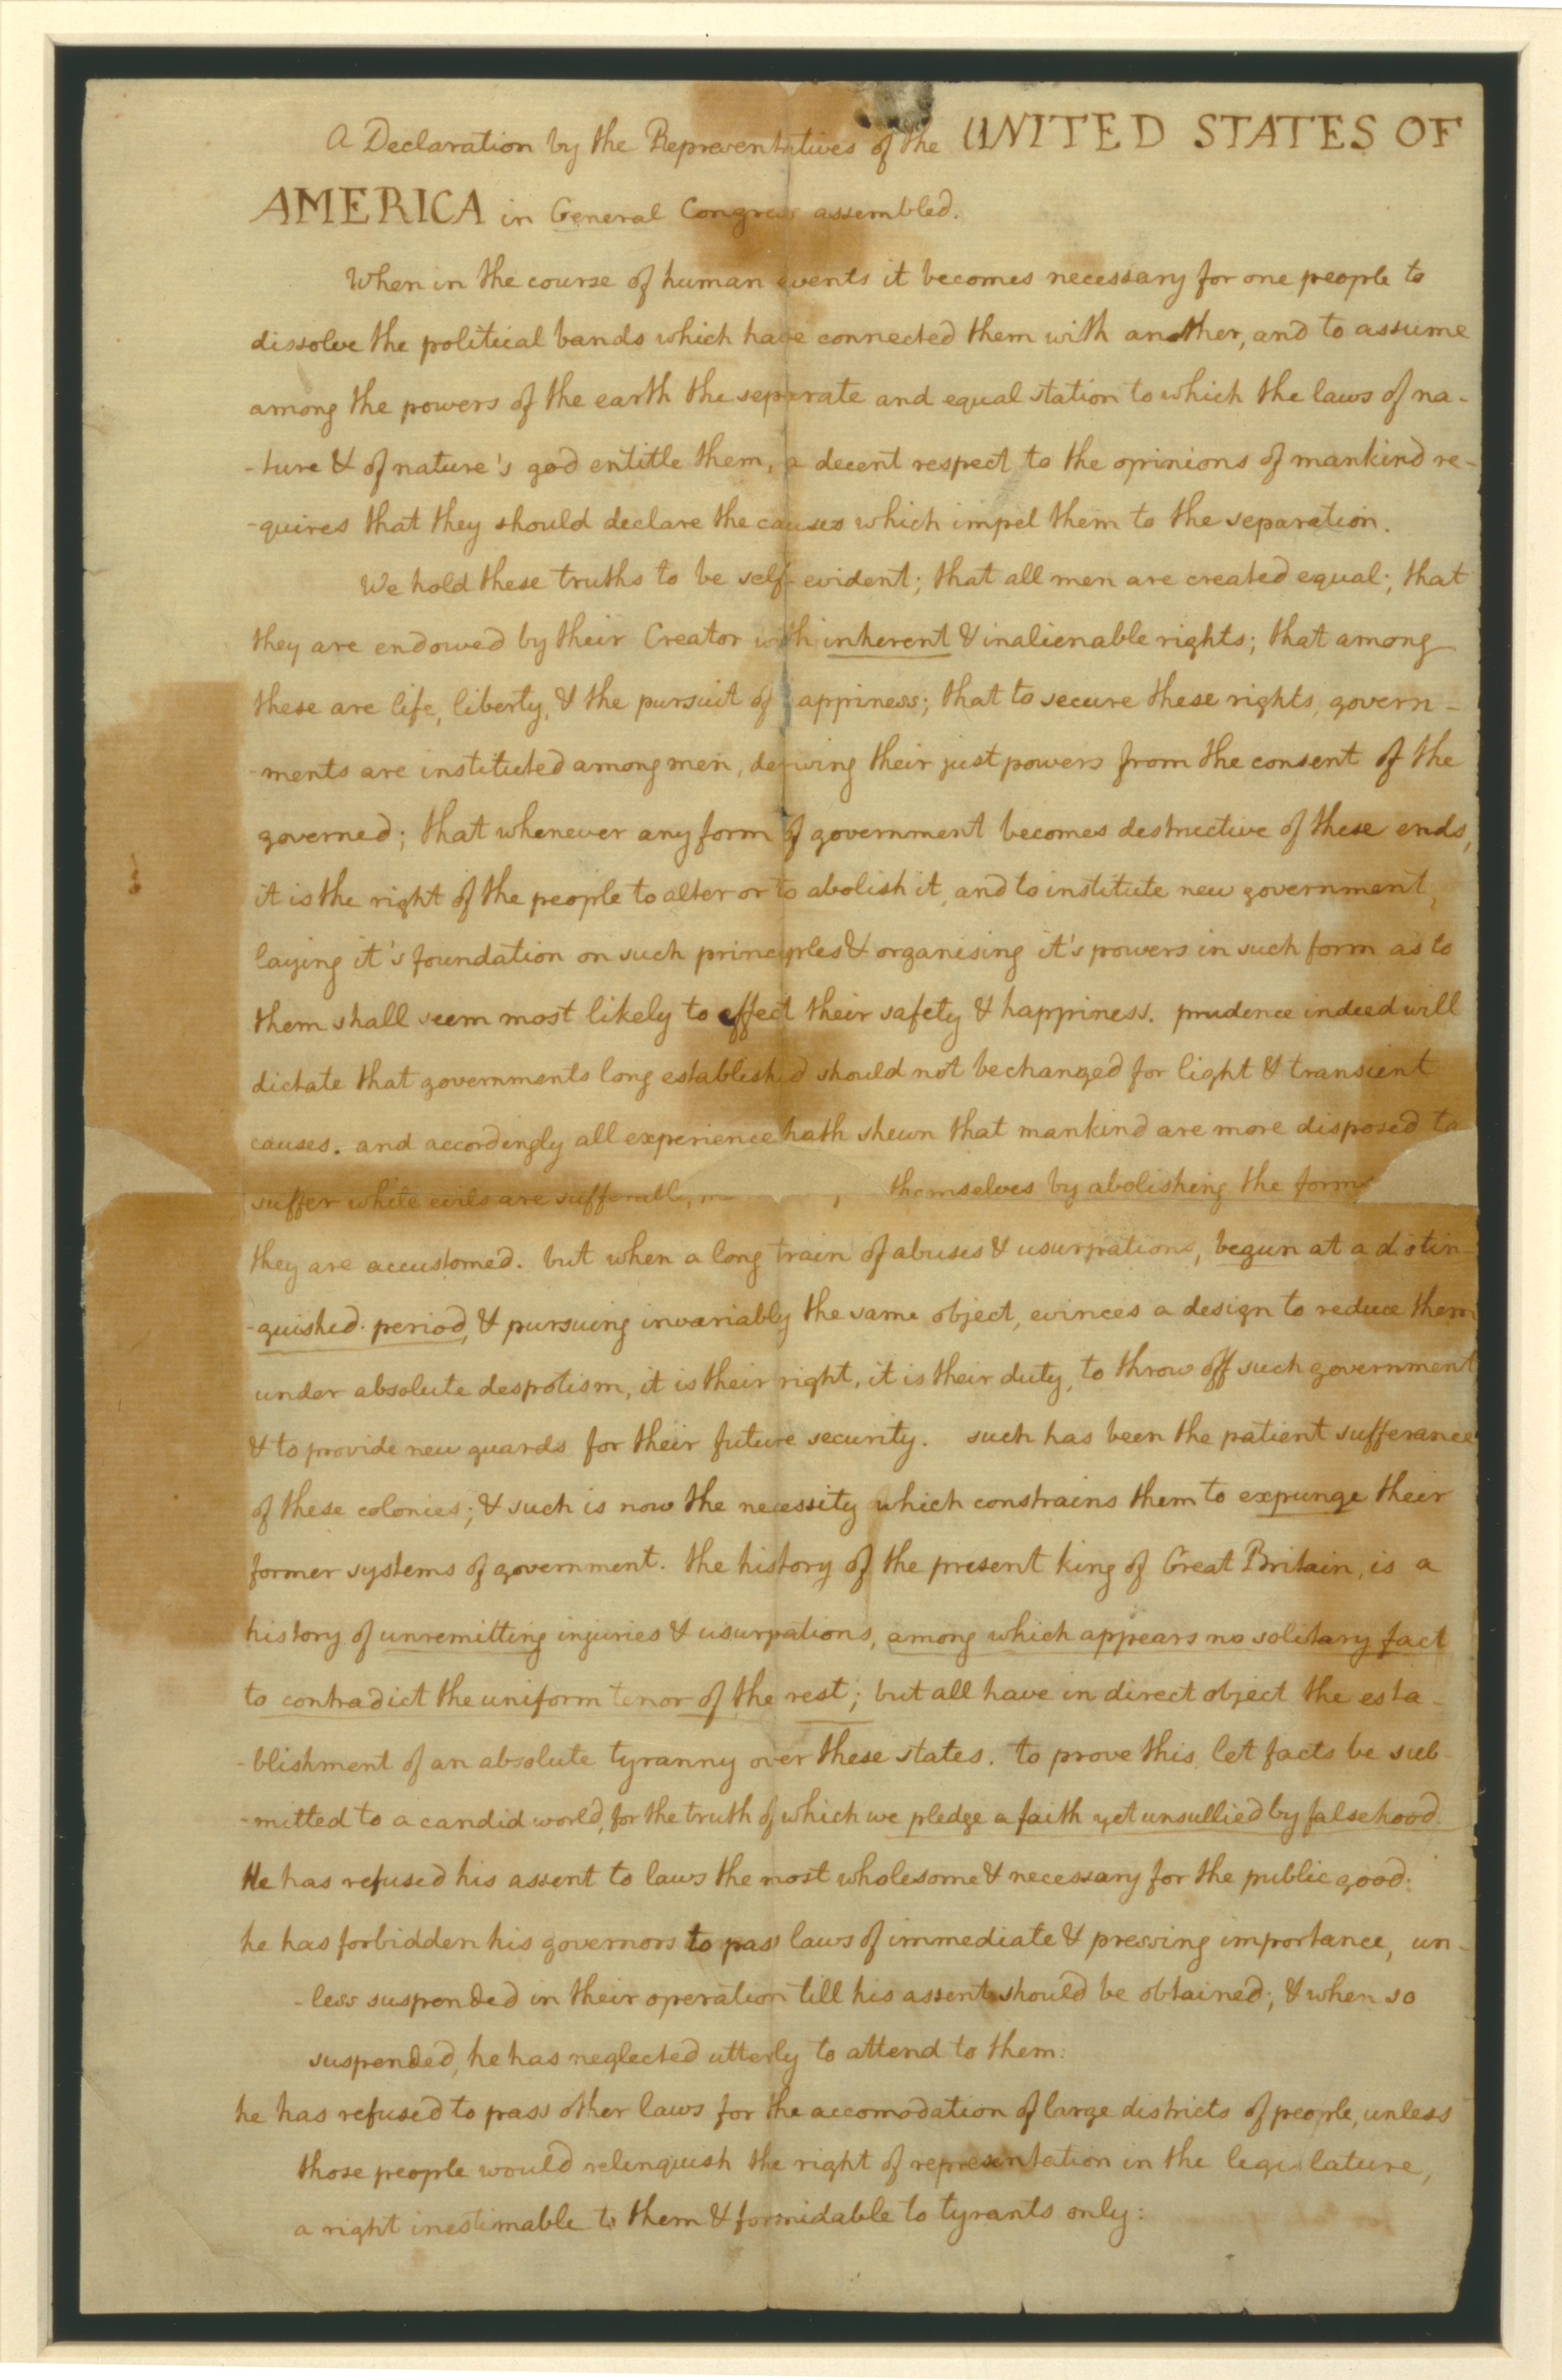 Page 4 of the Declaration of Independence on display in Magna Carta